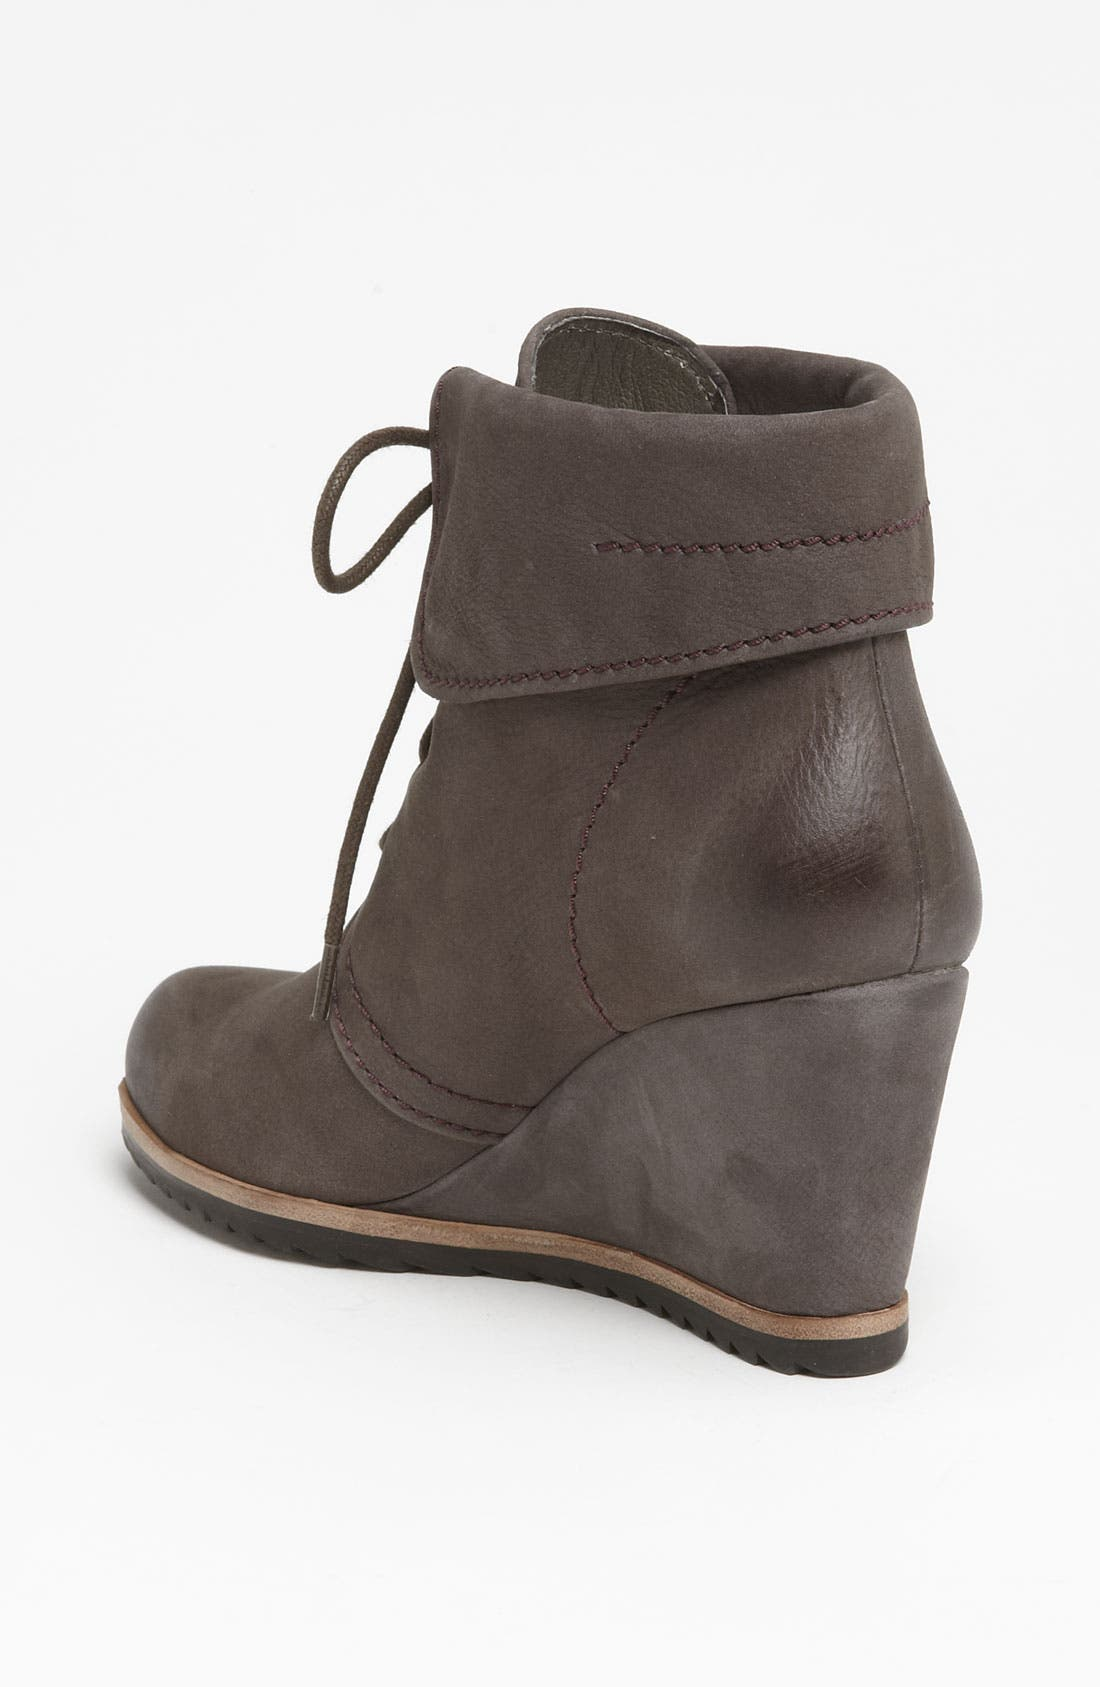 Alternate Image 2  - Biala 'Ashby' Collared Wedge Bootie